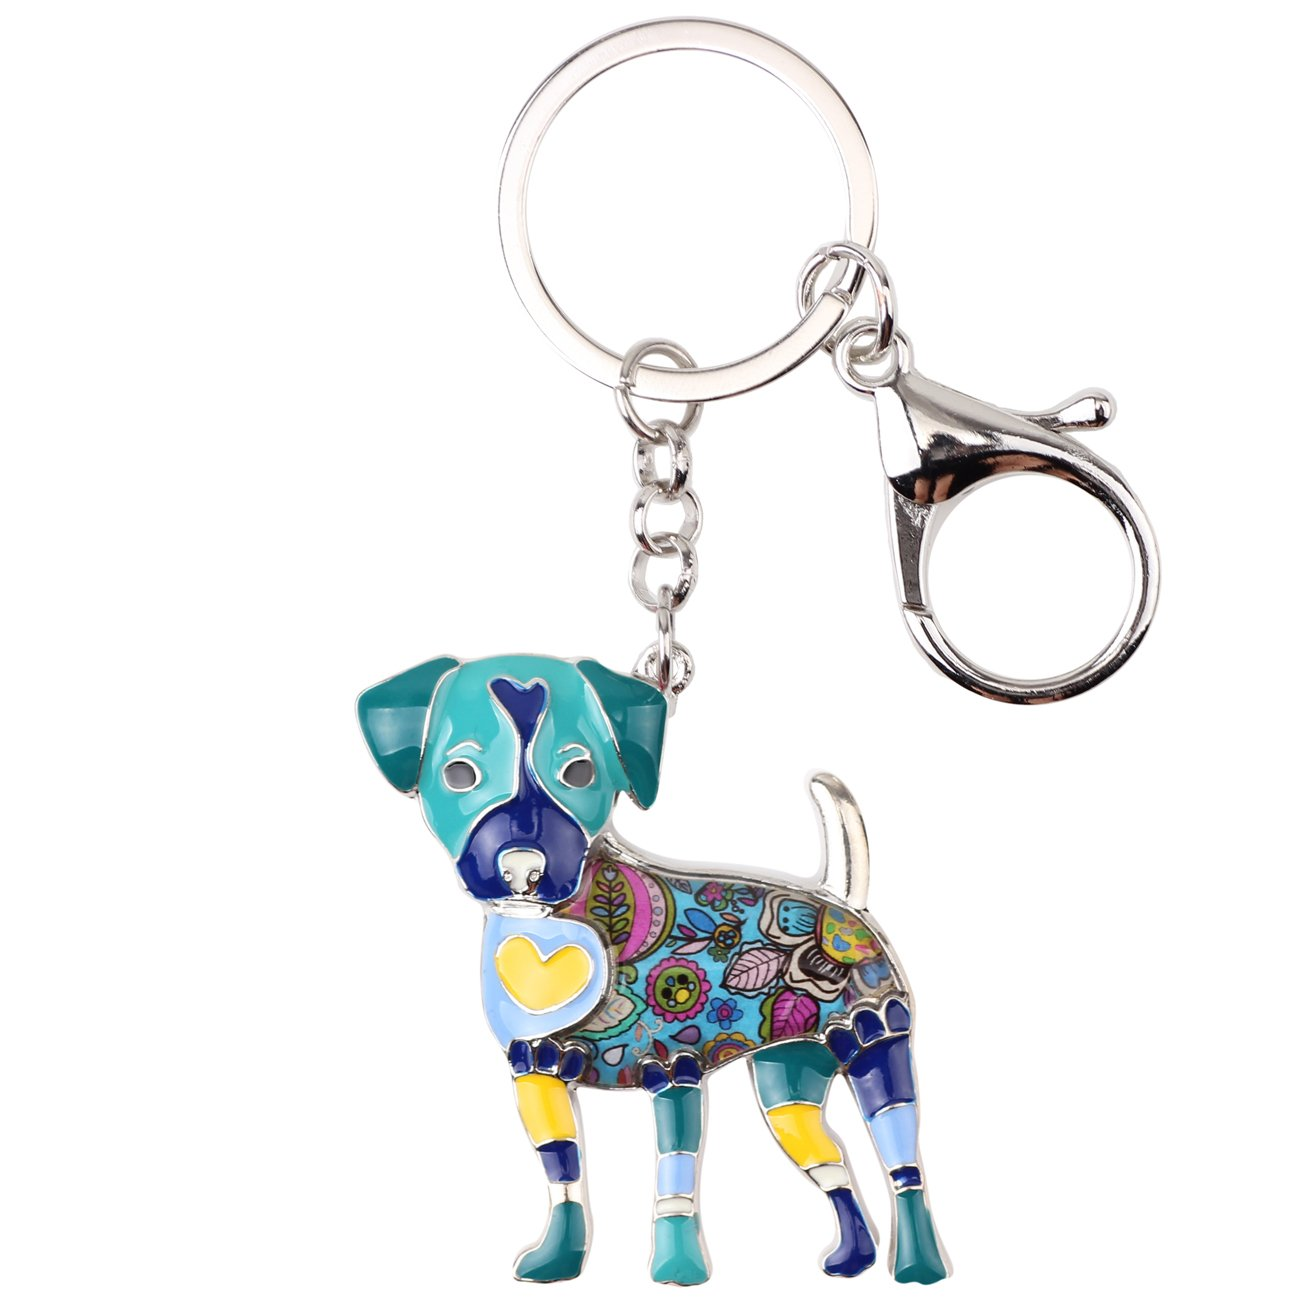 Bonsny Enamel Alloy Jack Russell Dog Key Chains For Women Gifts Car Purse Handbag Charms (Blue)